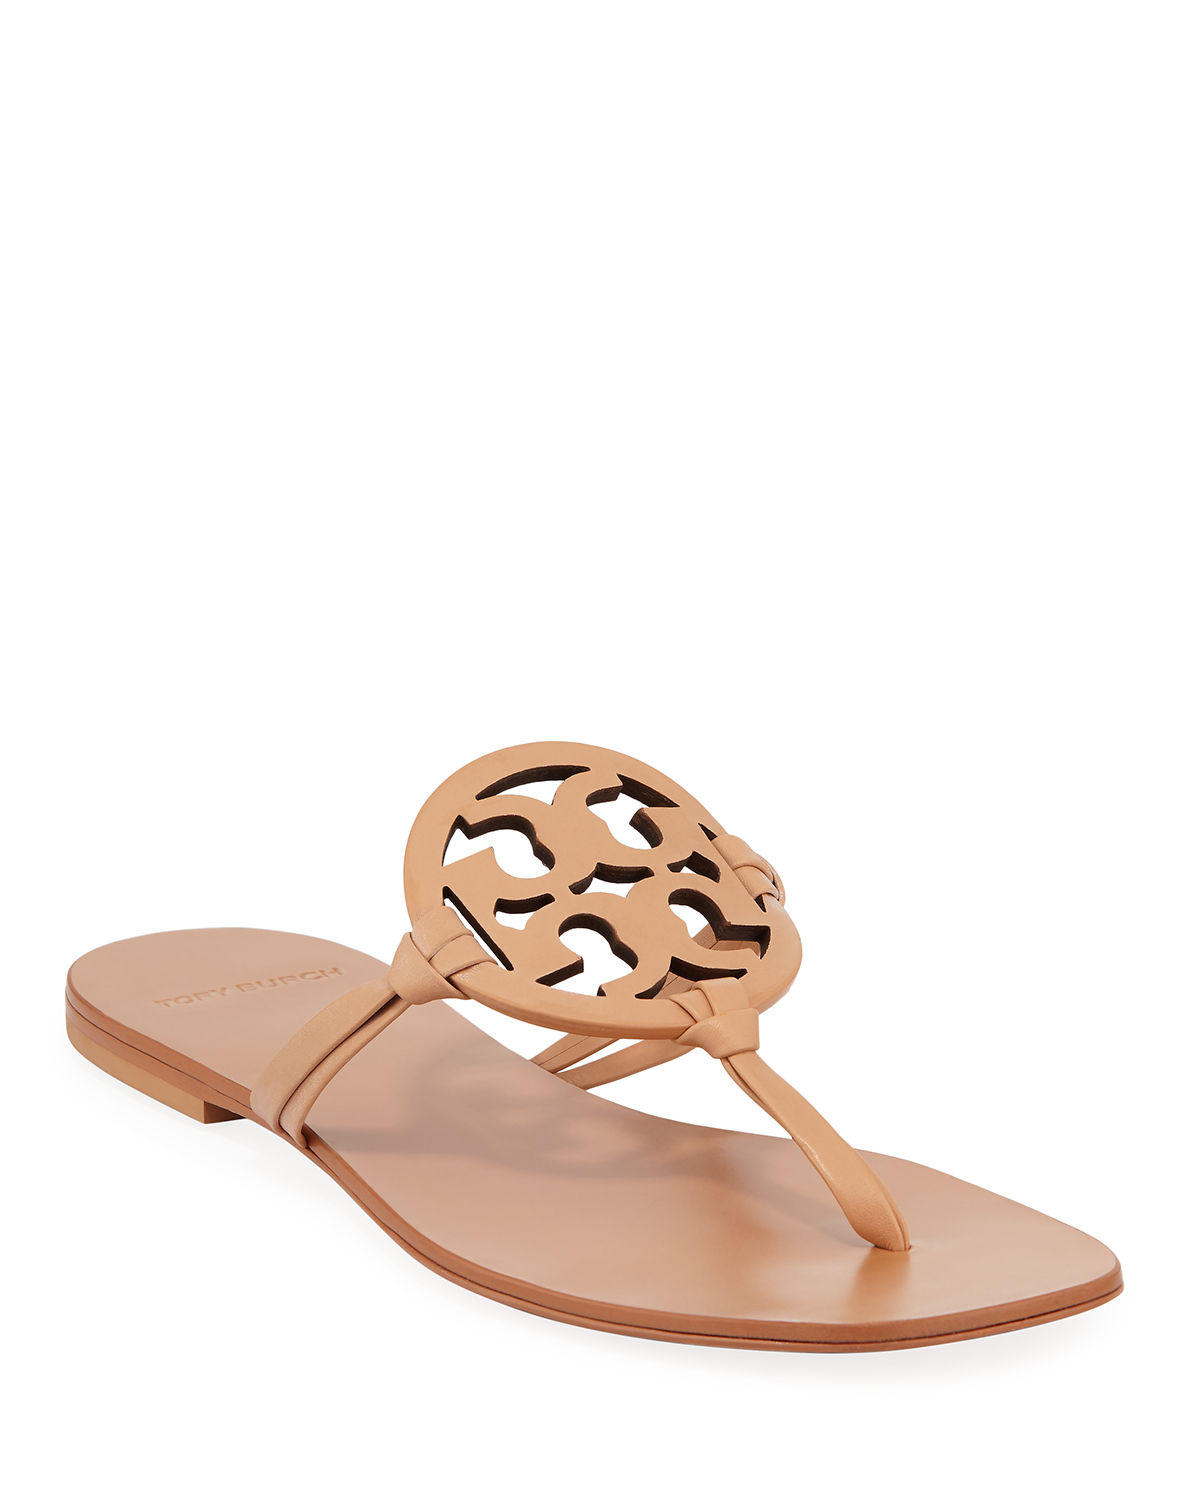 9718c9e08 Tory Burch Miller Square-Toe Flat Slide Sandals